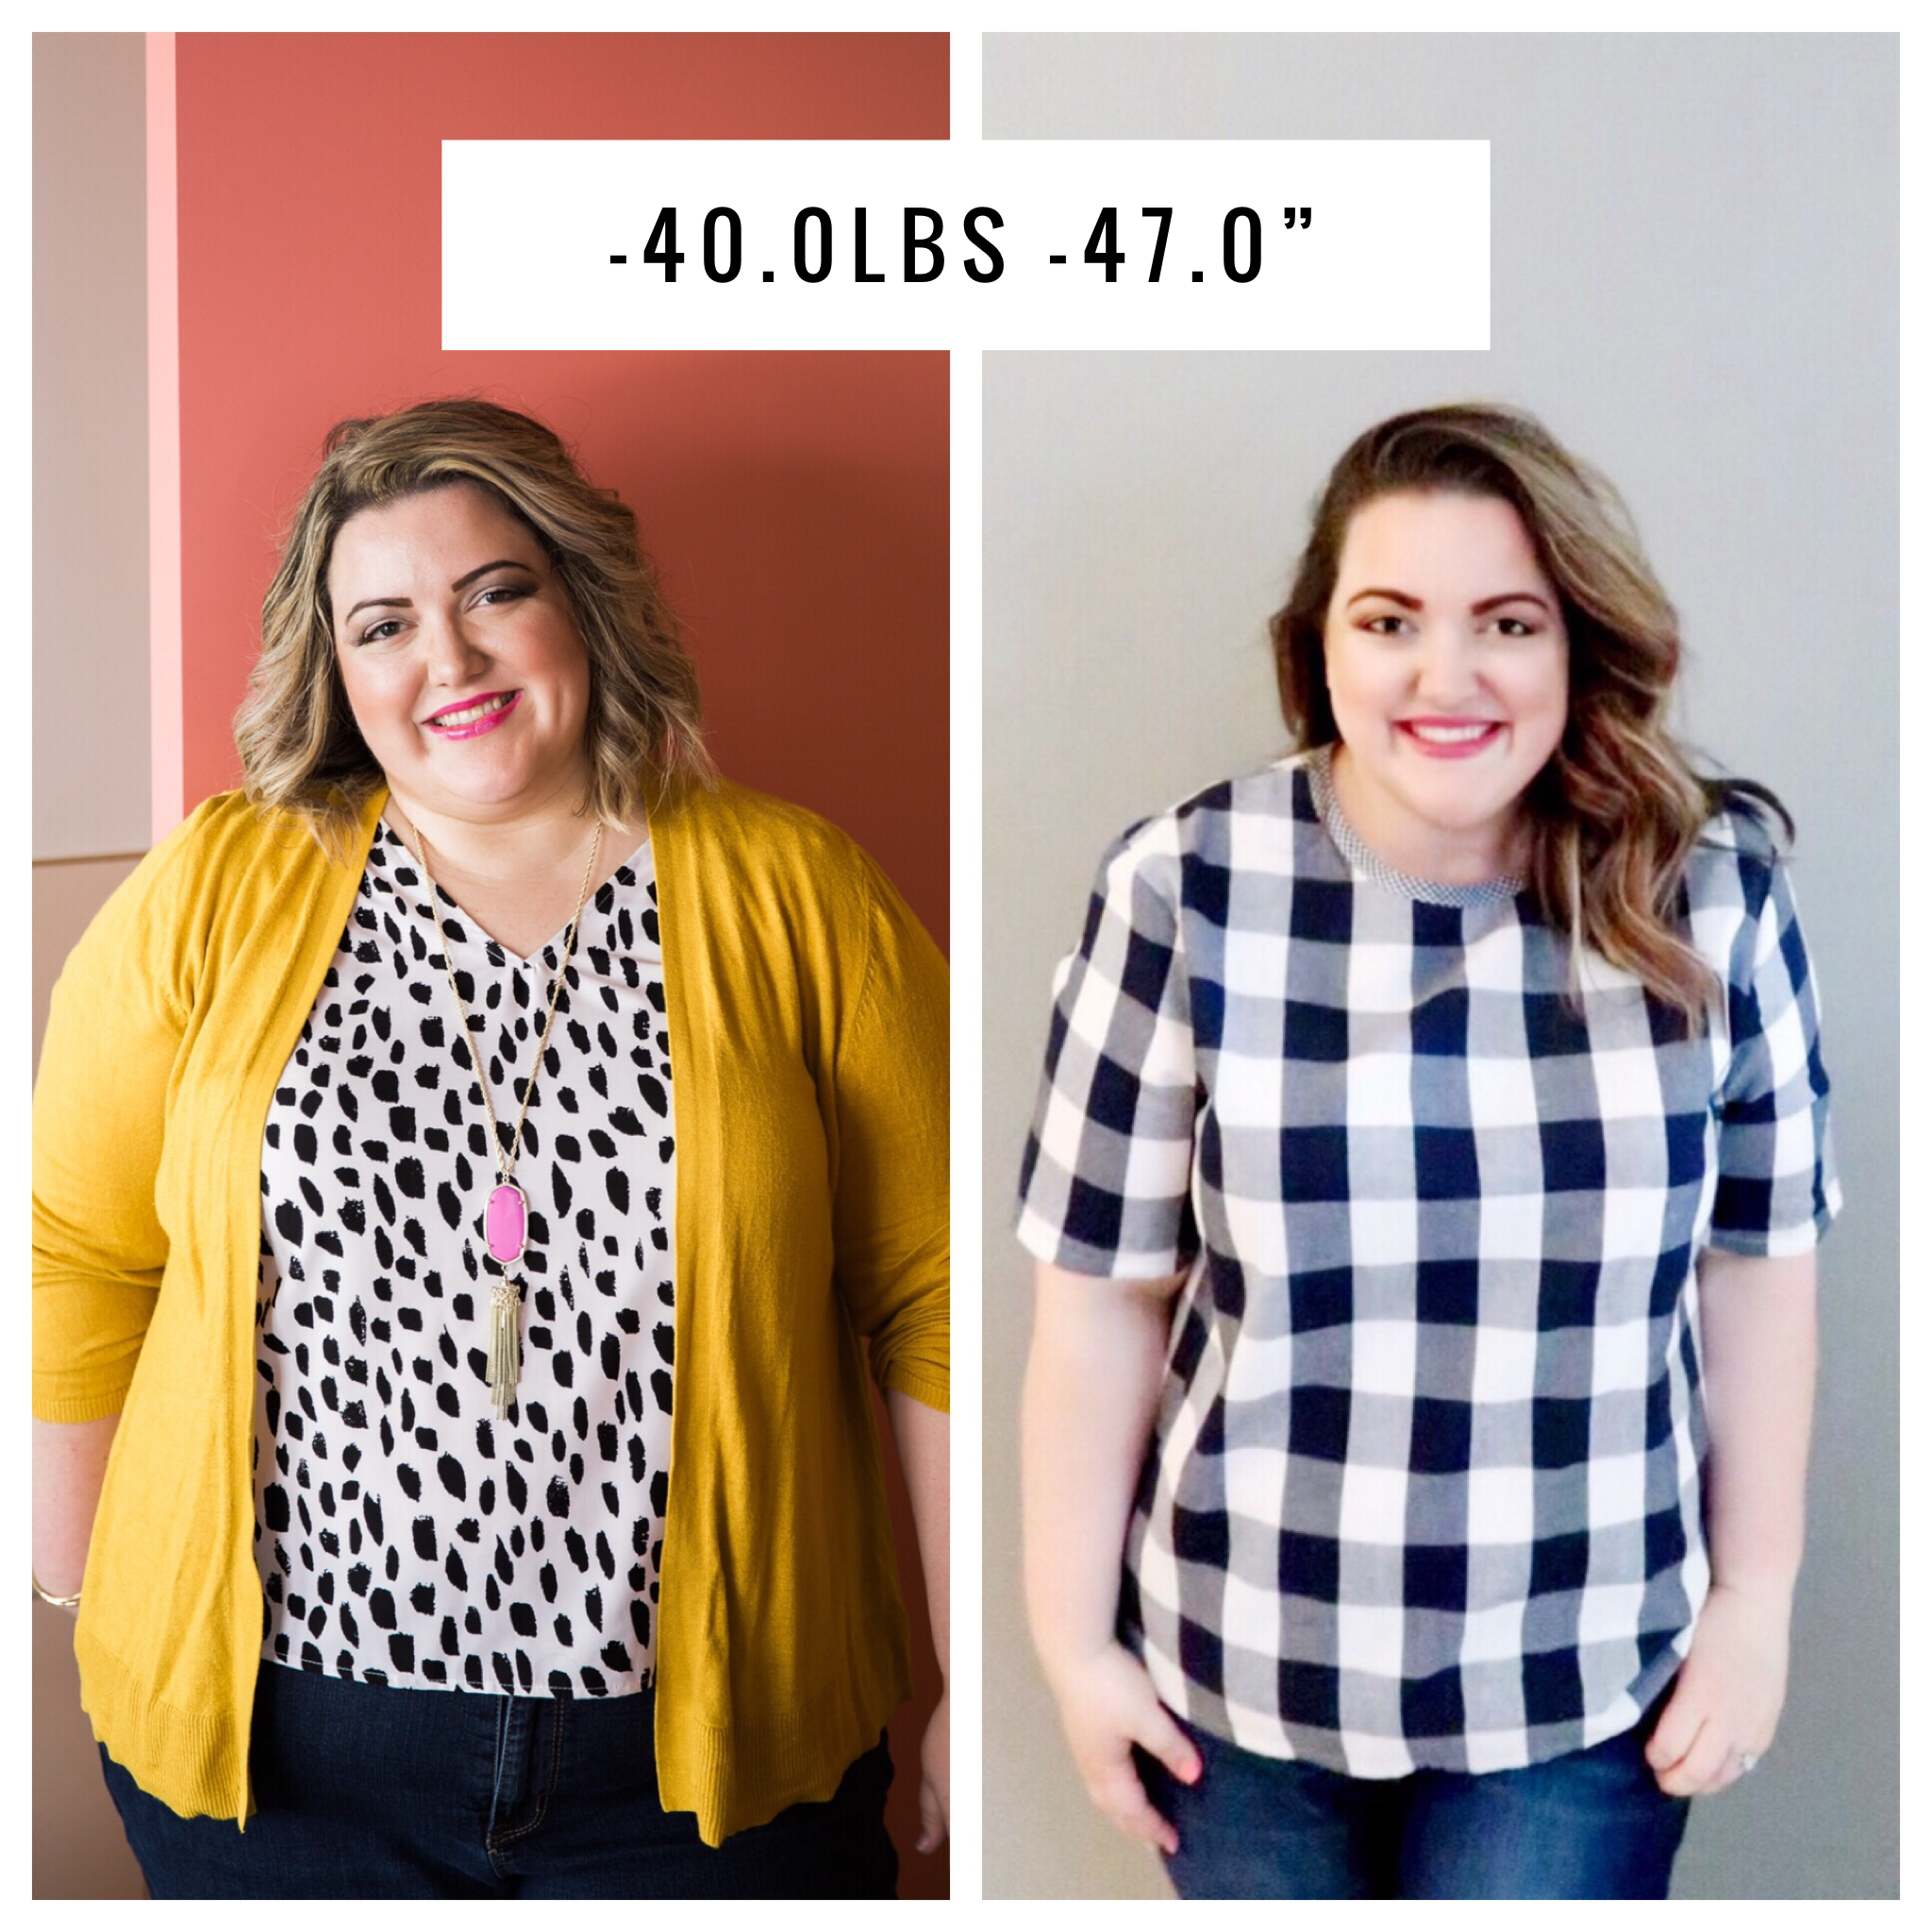 How to Overcome a Weight Loss Plateau in Under 48 Hours - Abagail Pumphrey, Simply Home